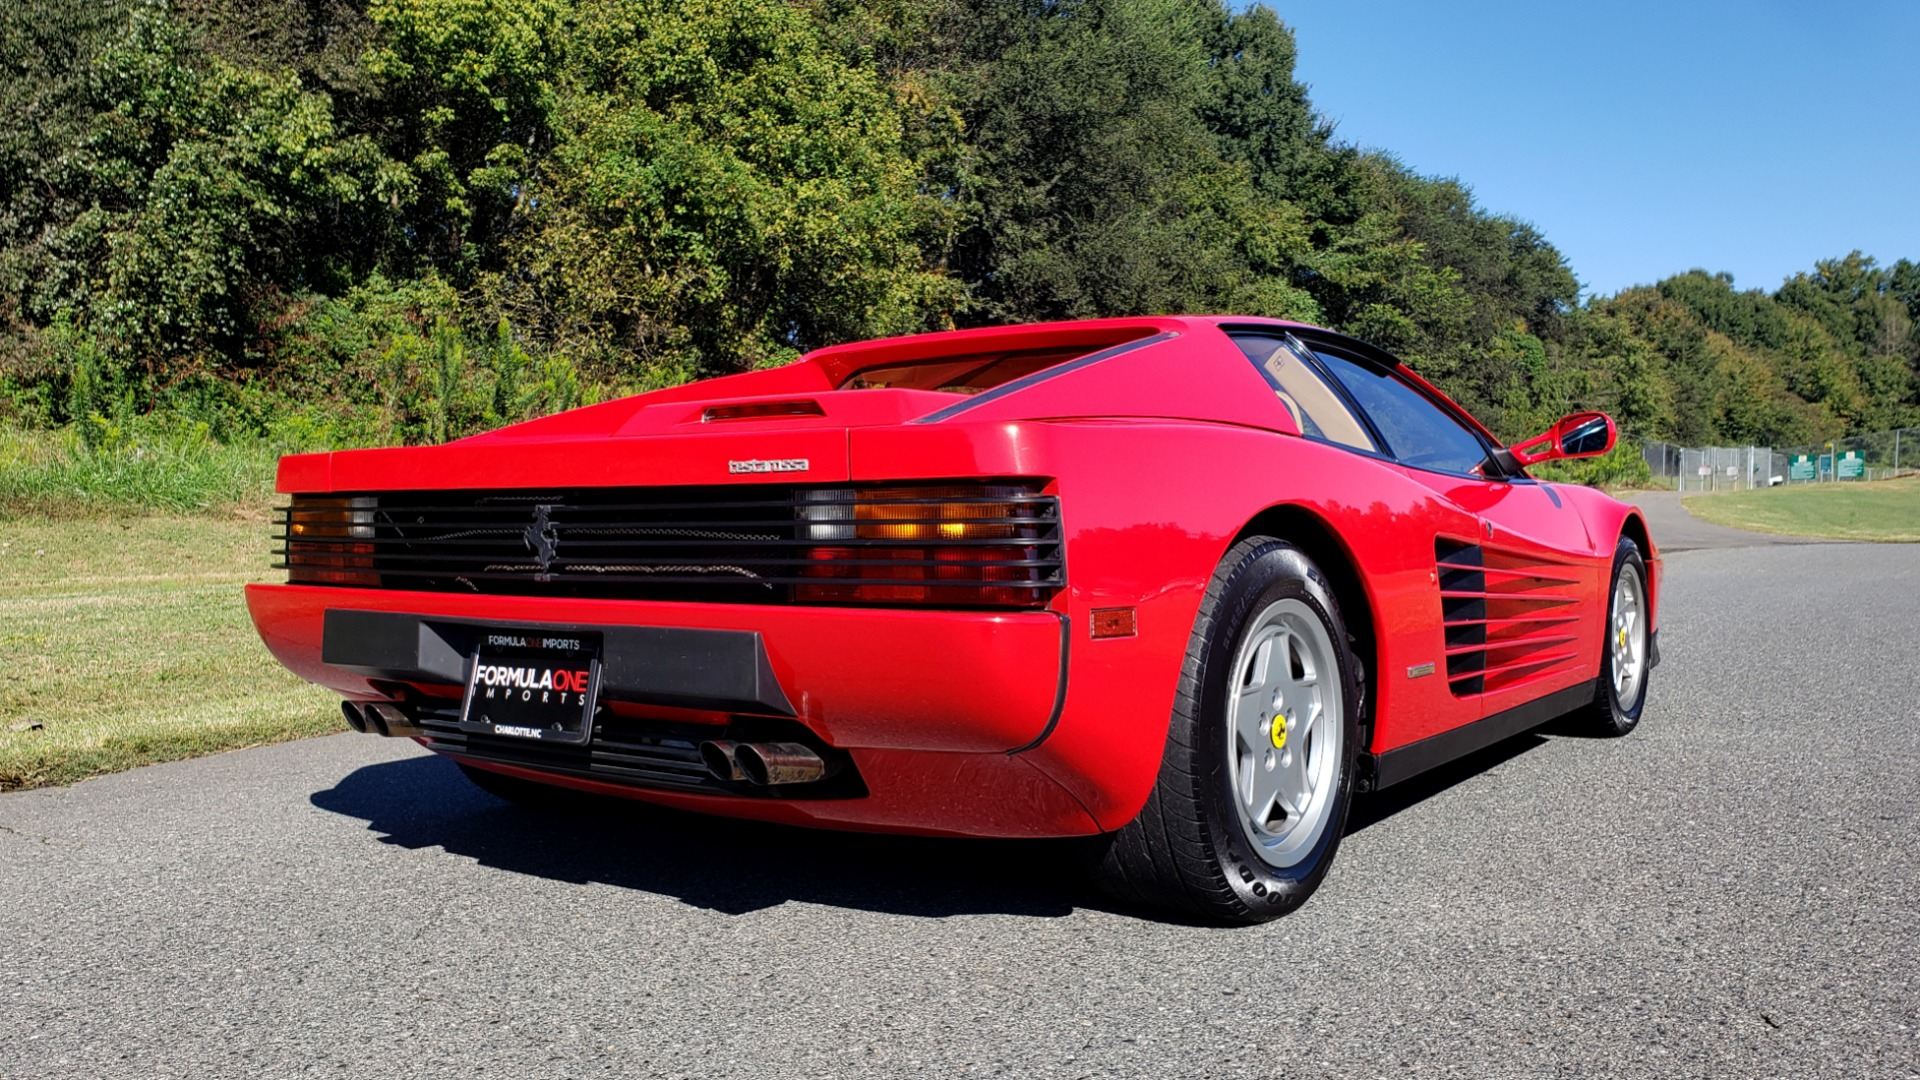 Used 1988 Ferrari TESTAROSSA COUPE / 4.9L FLAT-12 / 5-SPEED MANUAL / LOW MILES SUPER CLEAN for sale $128,999 at Formula Imports in Charlotte NC 28227 7